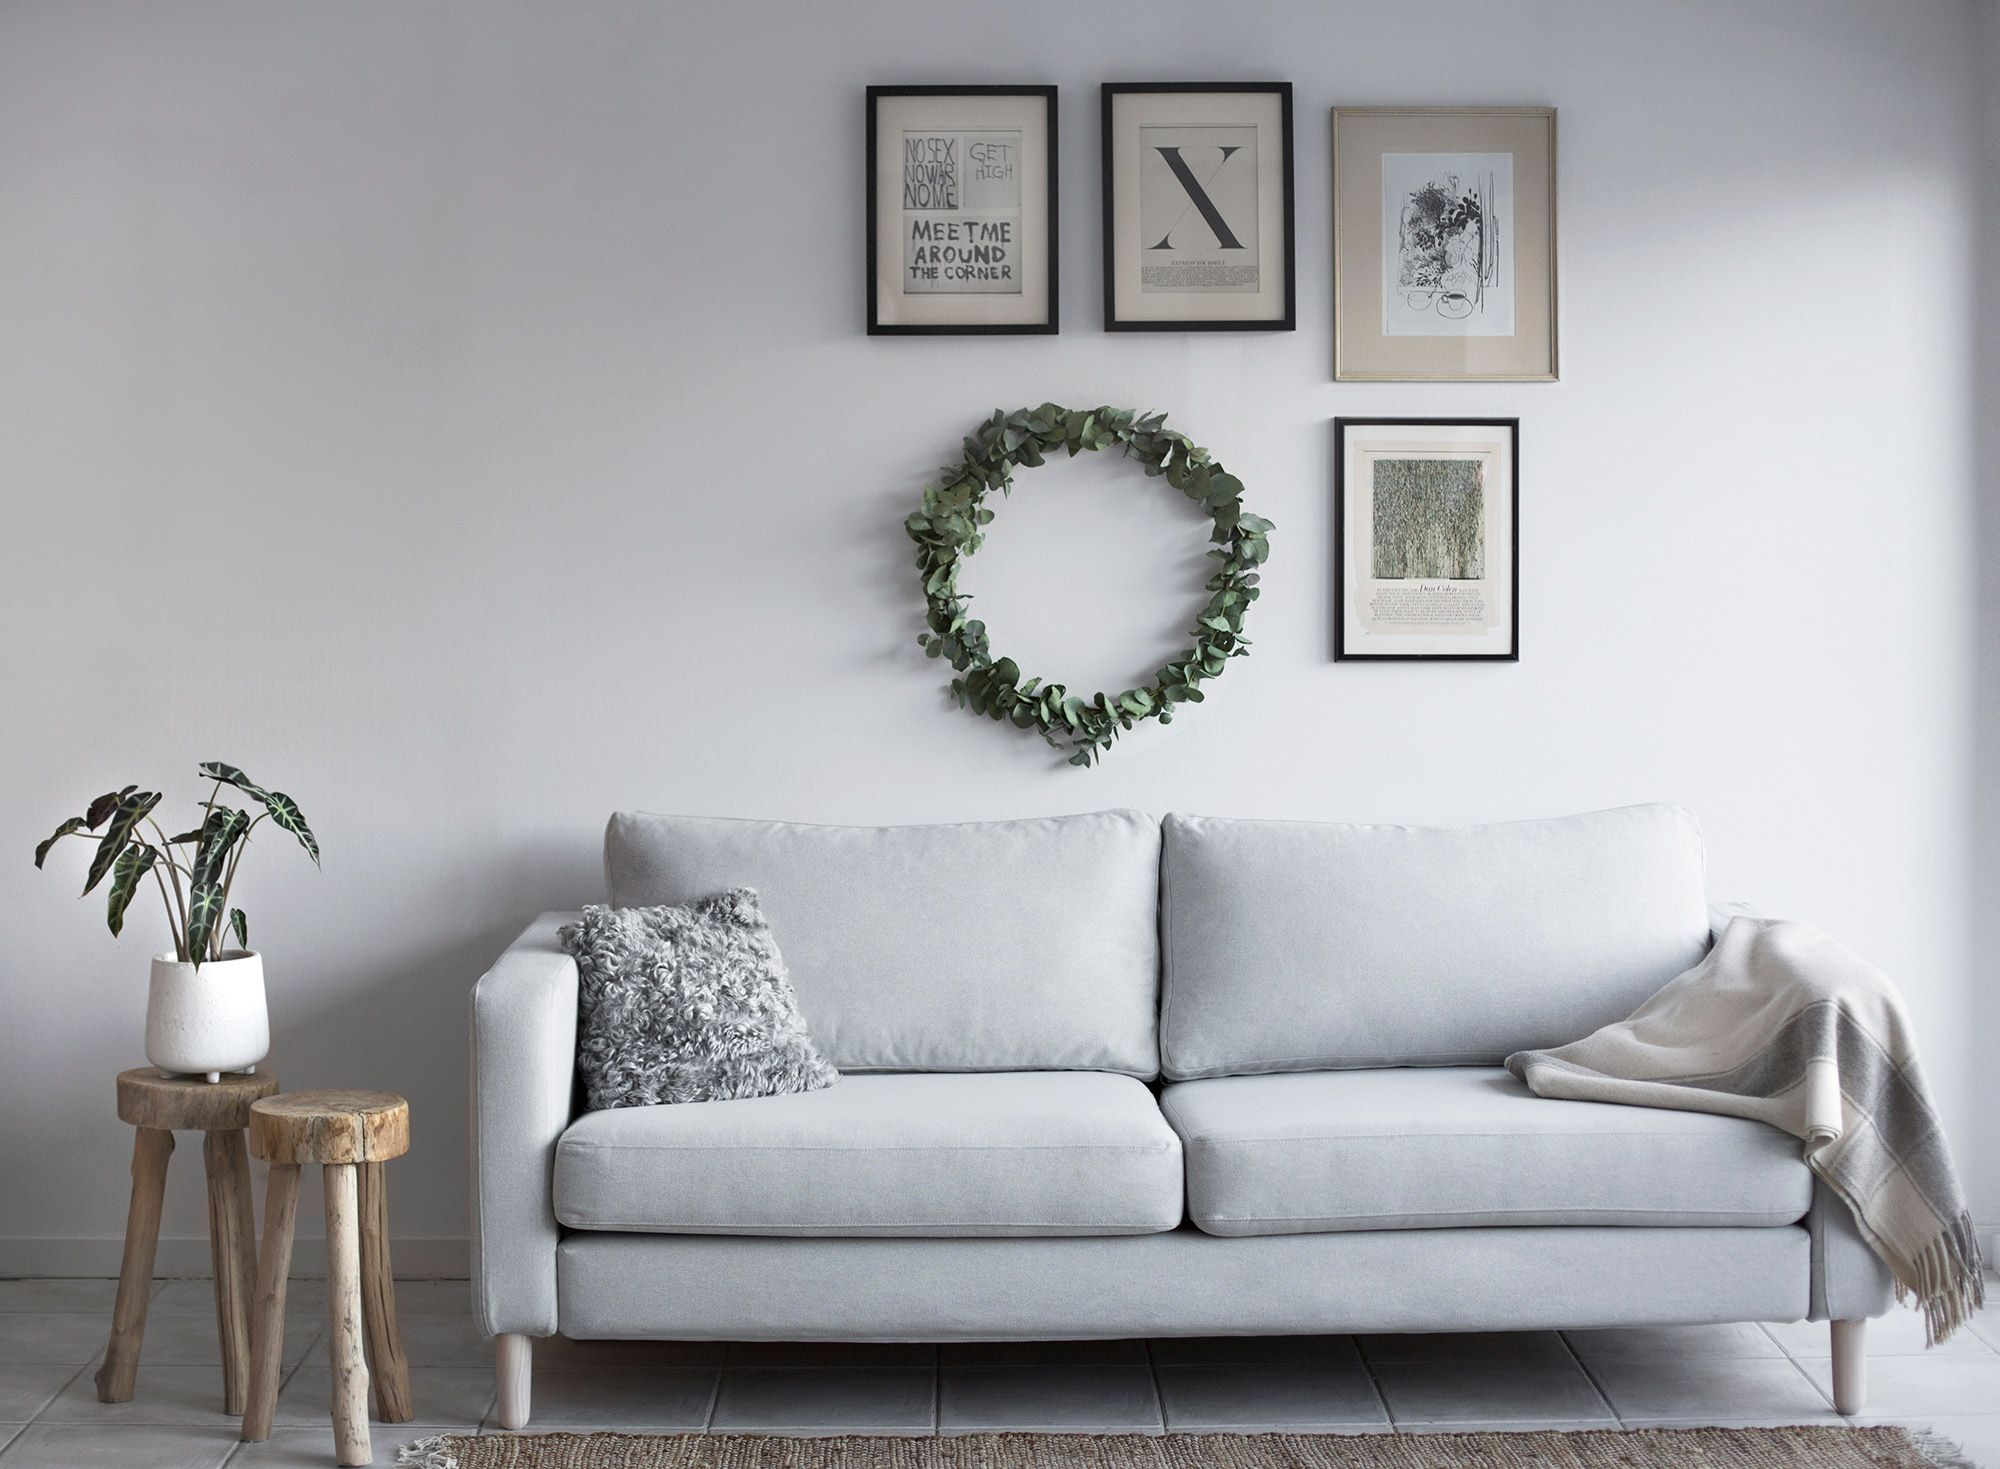 As Part Of Our Sustainability Project We Enlisted The Help Of Emma Elwin From Make It Last To Update An Old Ikea Karlstad Ikea Sofa Sofa Covers Ikea Karlstad